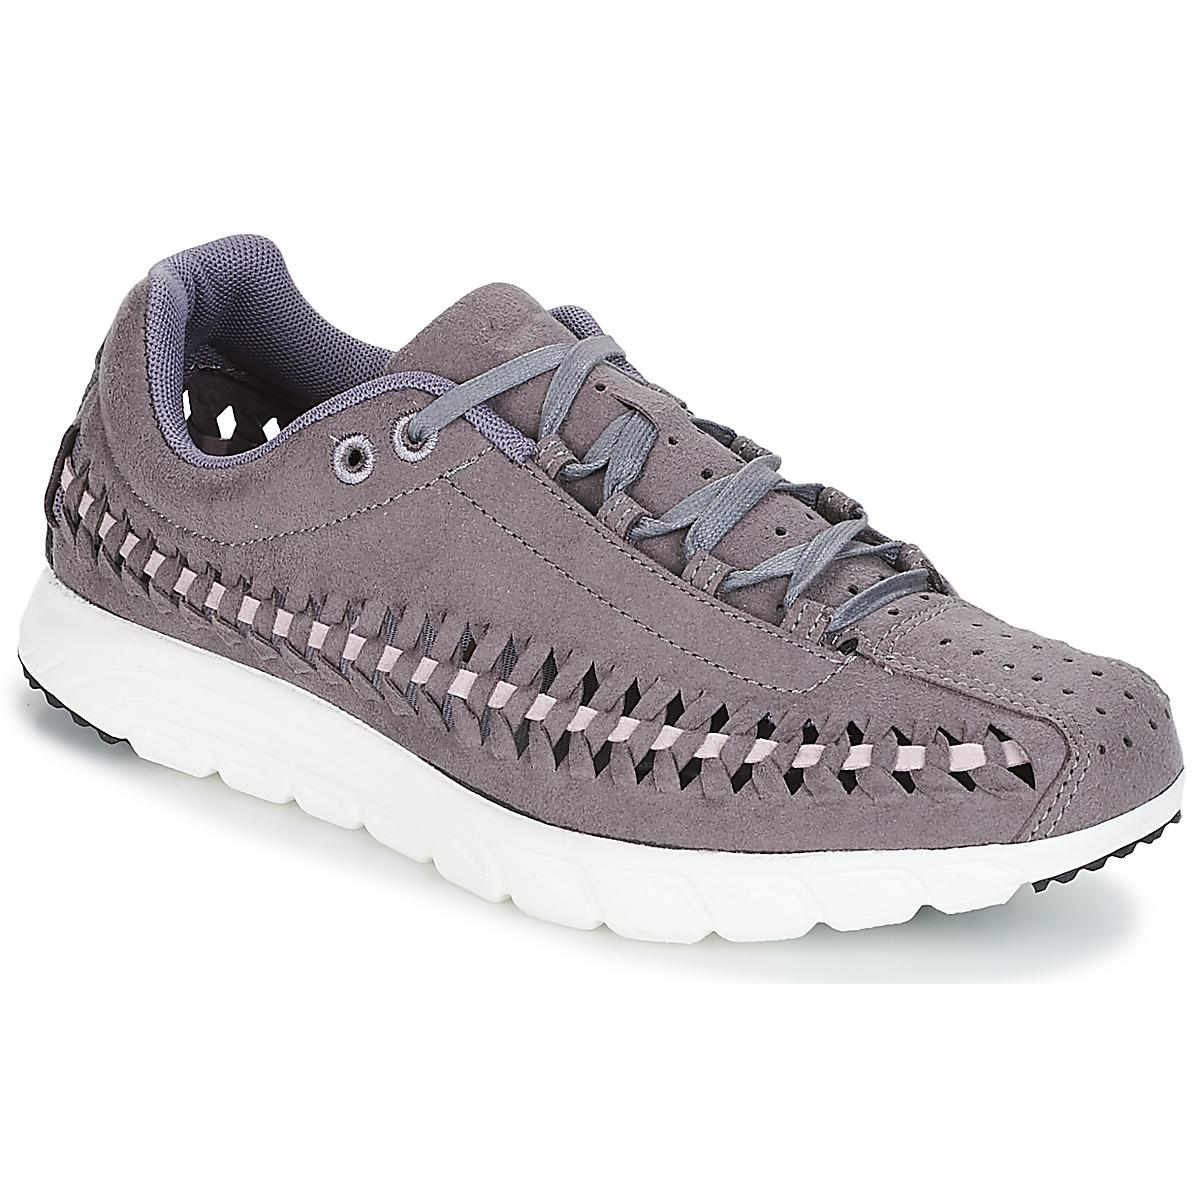 5854b9164e66 Nike Mayfly Woven W Shoes (trainers) in Gray - Save 15% - Lyst